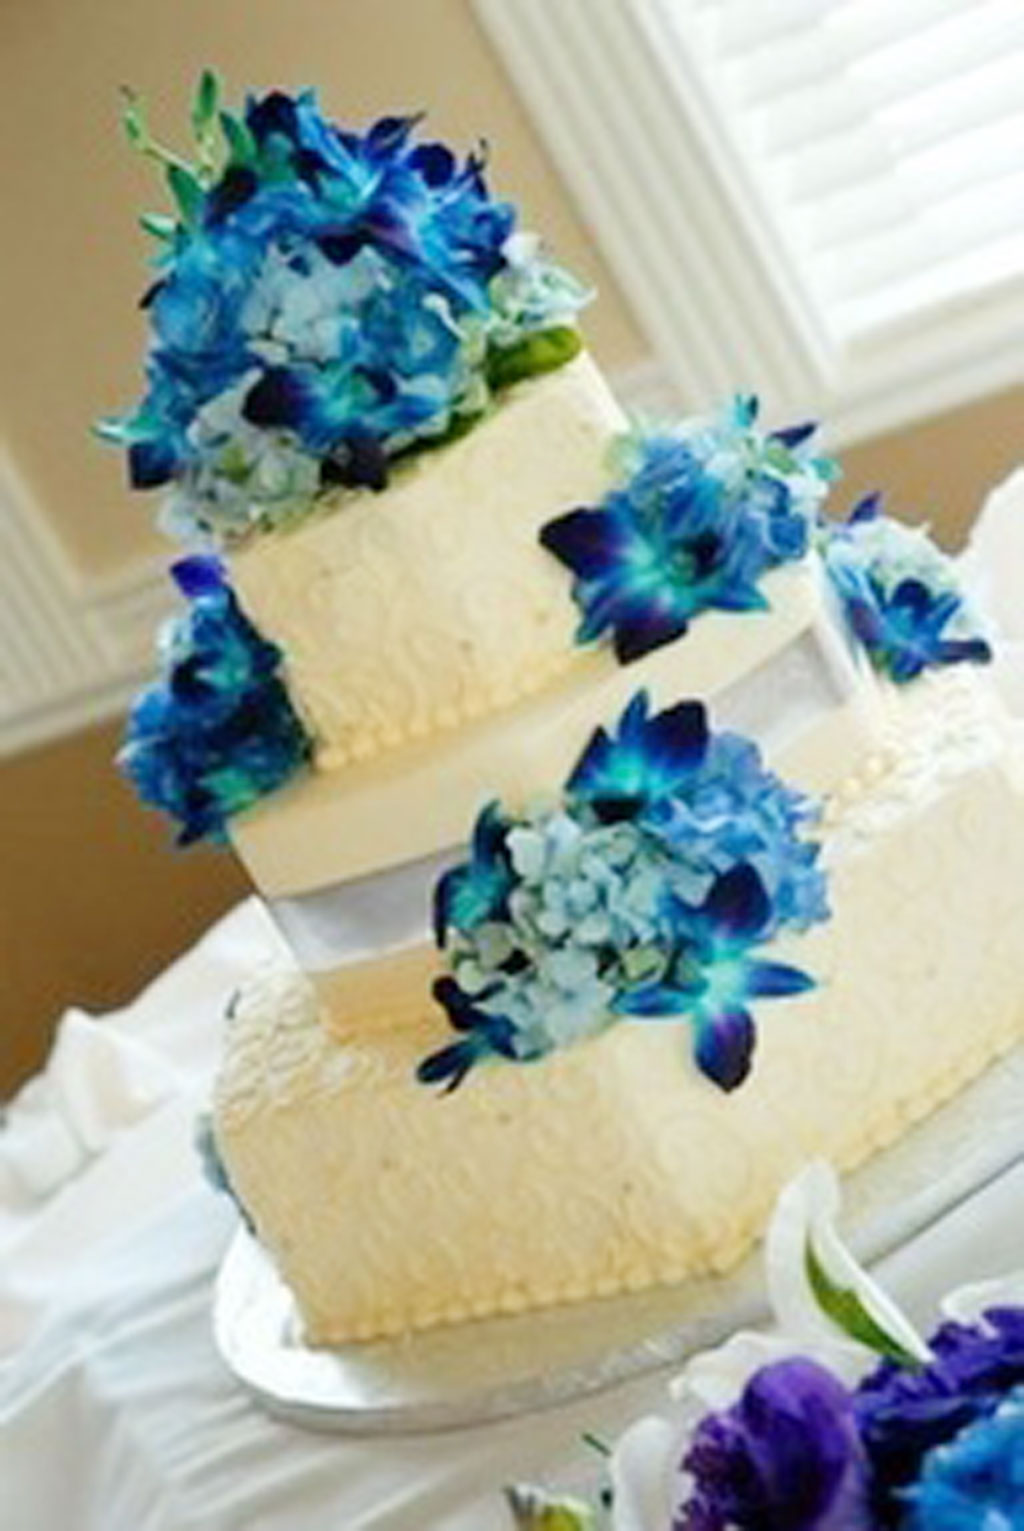 Blue Orchid Bridal Cake Ideas and Designs